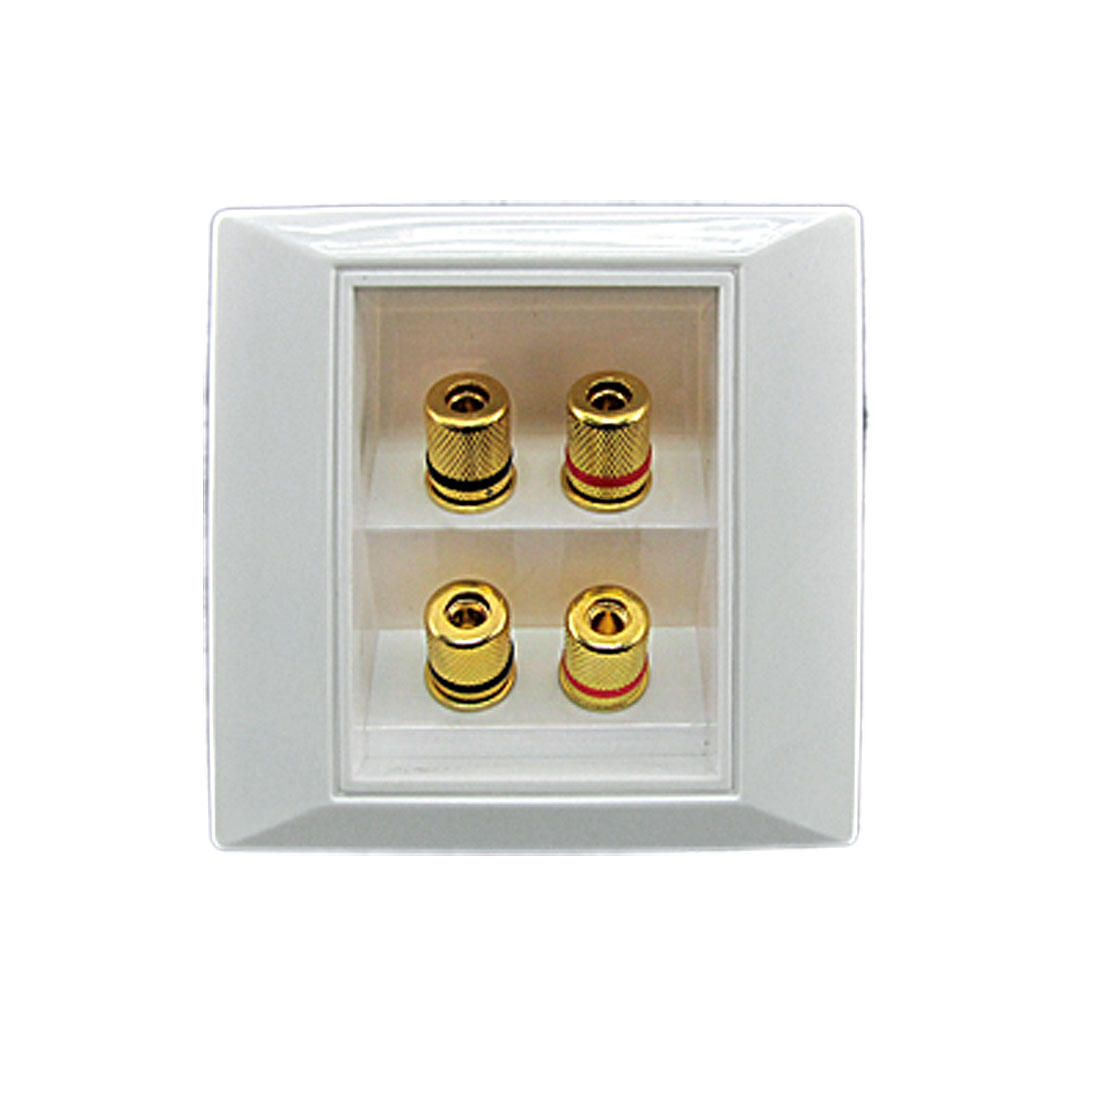 White Sqaure Audio Video Component 2 Speaker Wallplate